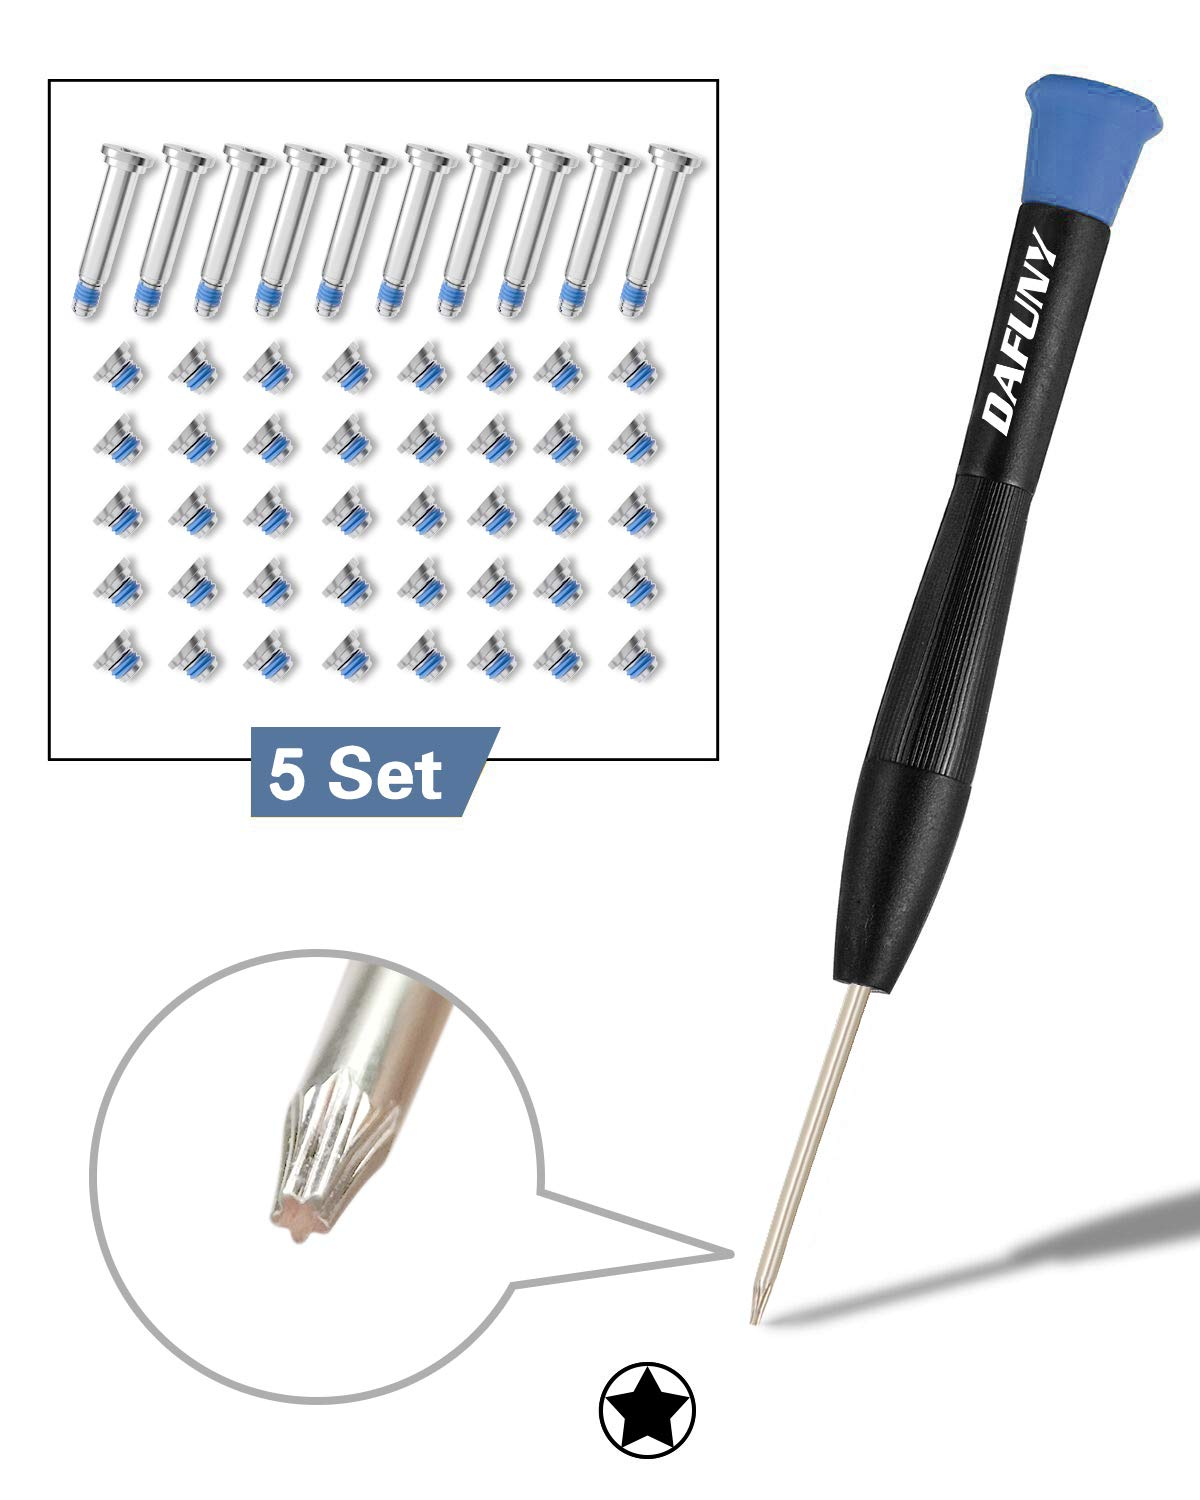 DAFUNY Repair Replacement Screws 5 Set(50pcs) Compatible with Unibody Macbook Air + 1pcs 5-point Pentalobe Screwdriver for 13 inch A1369 A1466 Bottom Case, 2010 2011 2012 2013 2014 2015 and 2016 Model